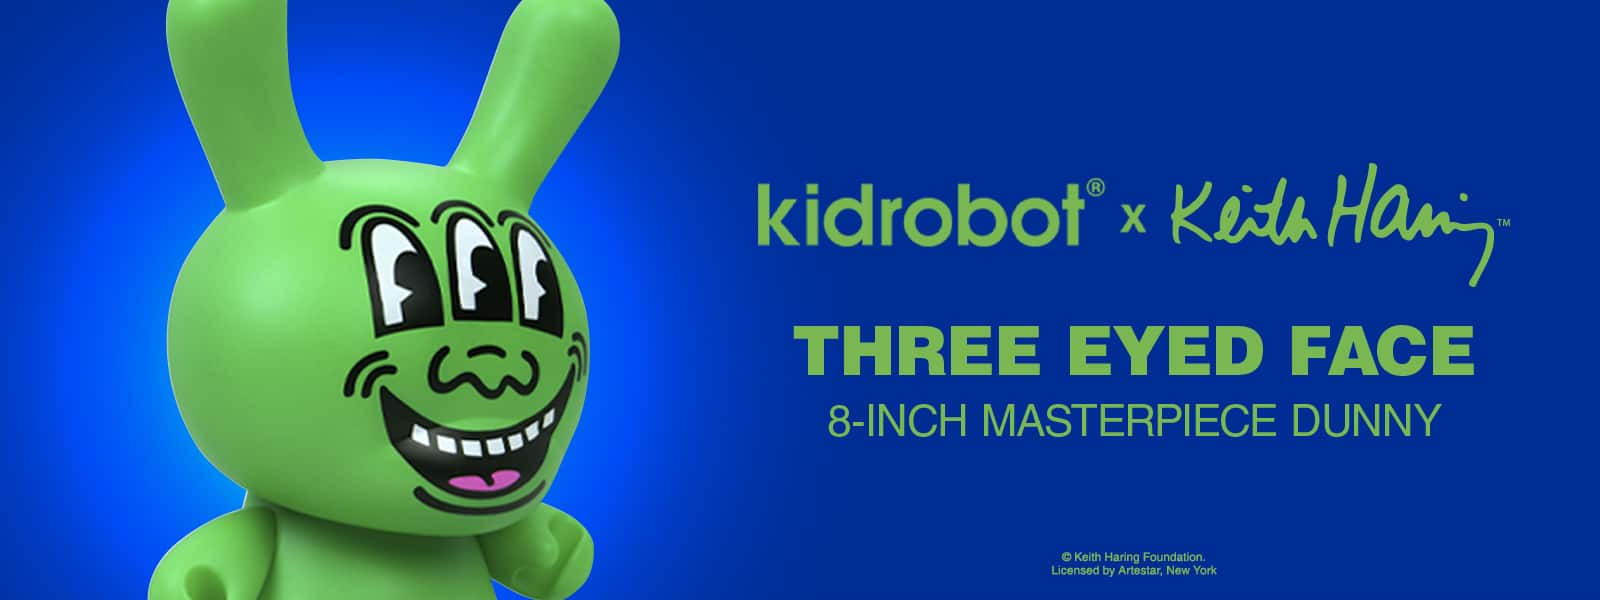 Kidrobot x Keith Haring Three Eyed Face Dunny